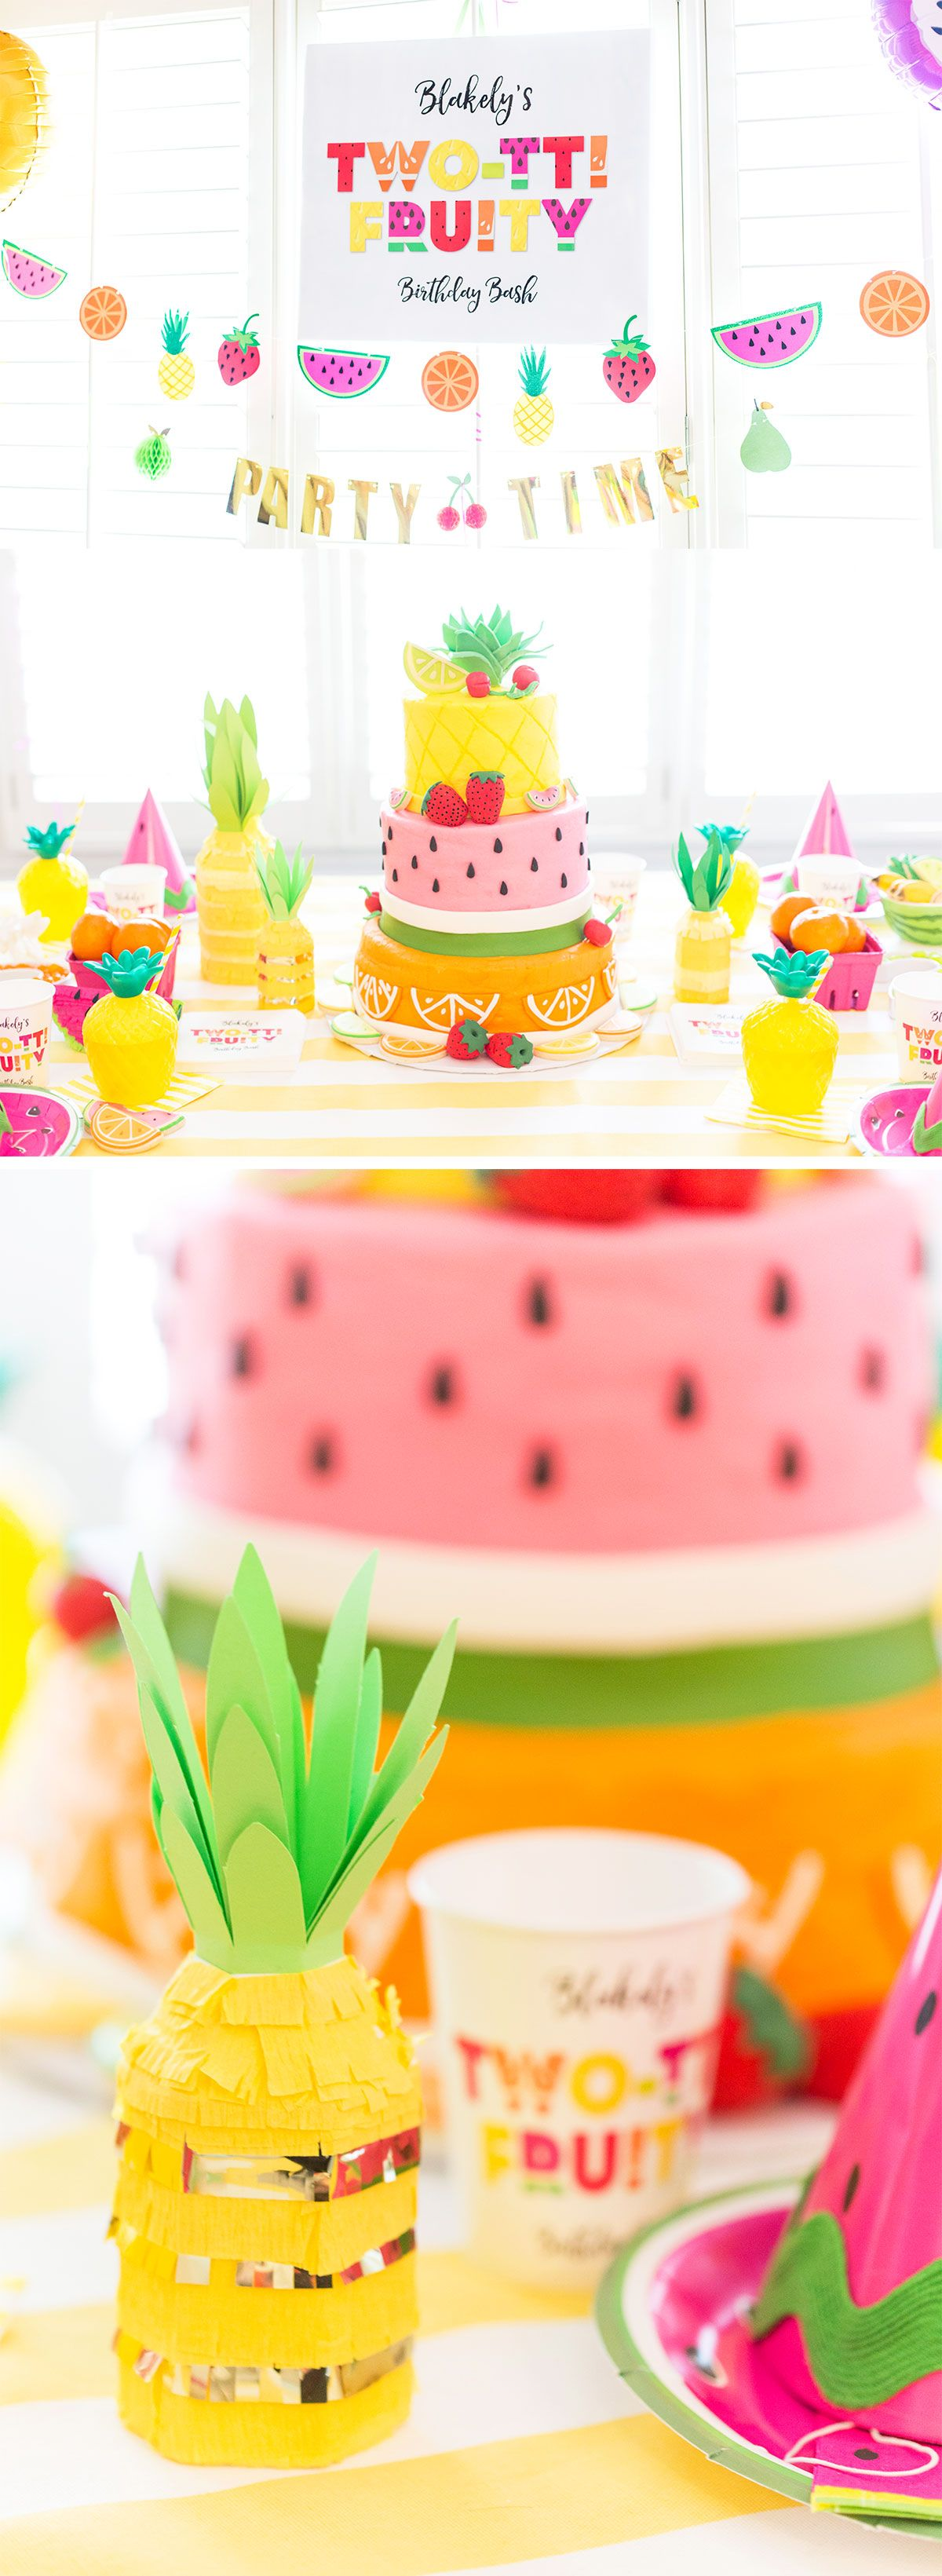 Adorable Puppy Themed 1st Birthday Party November 24th A